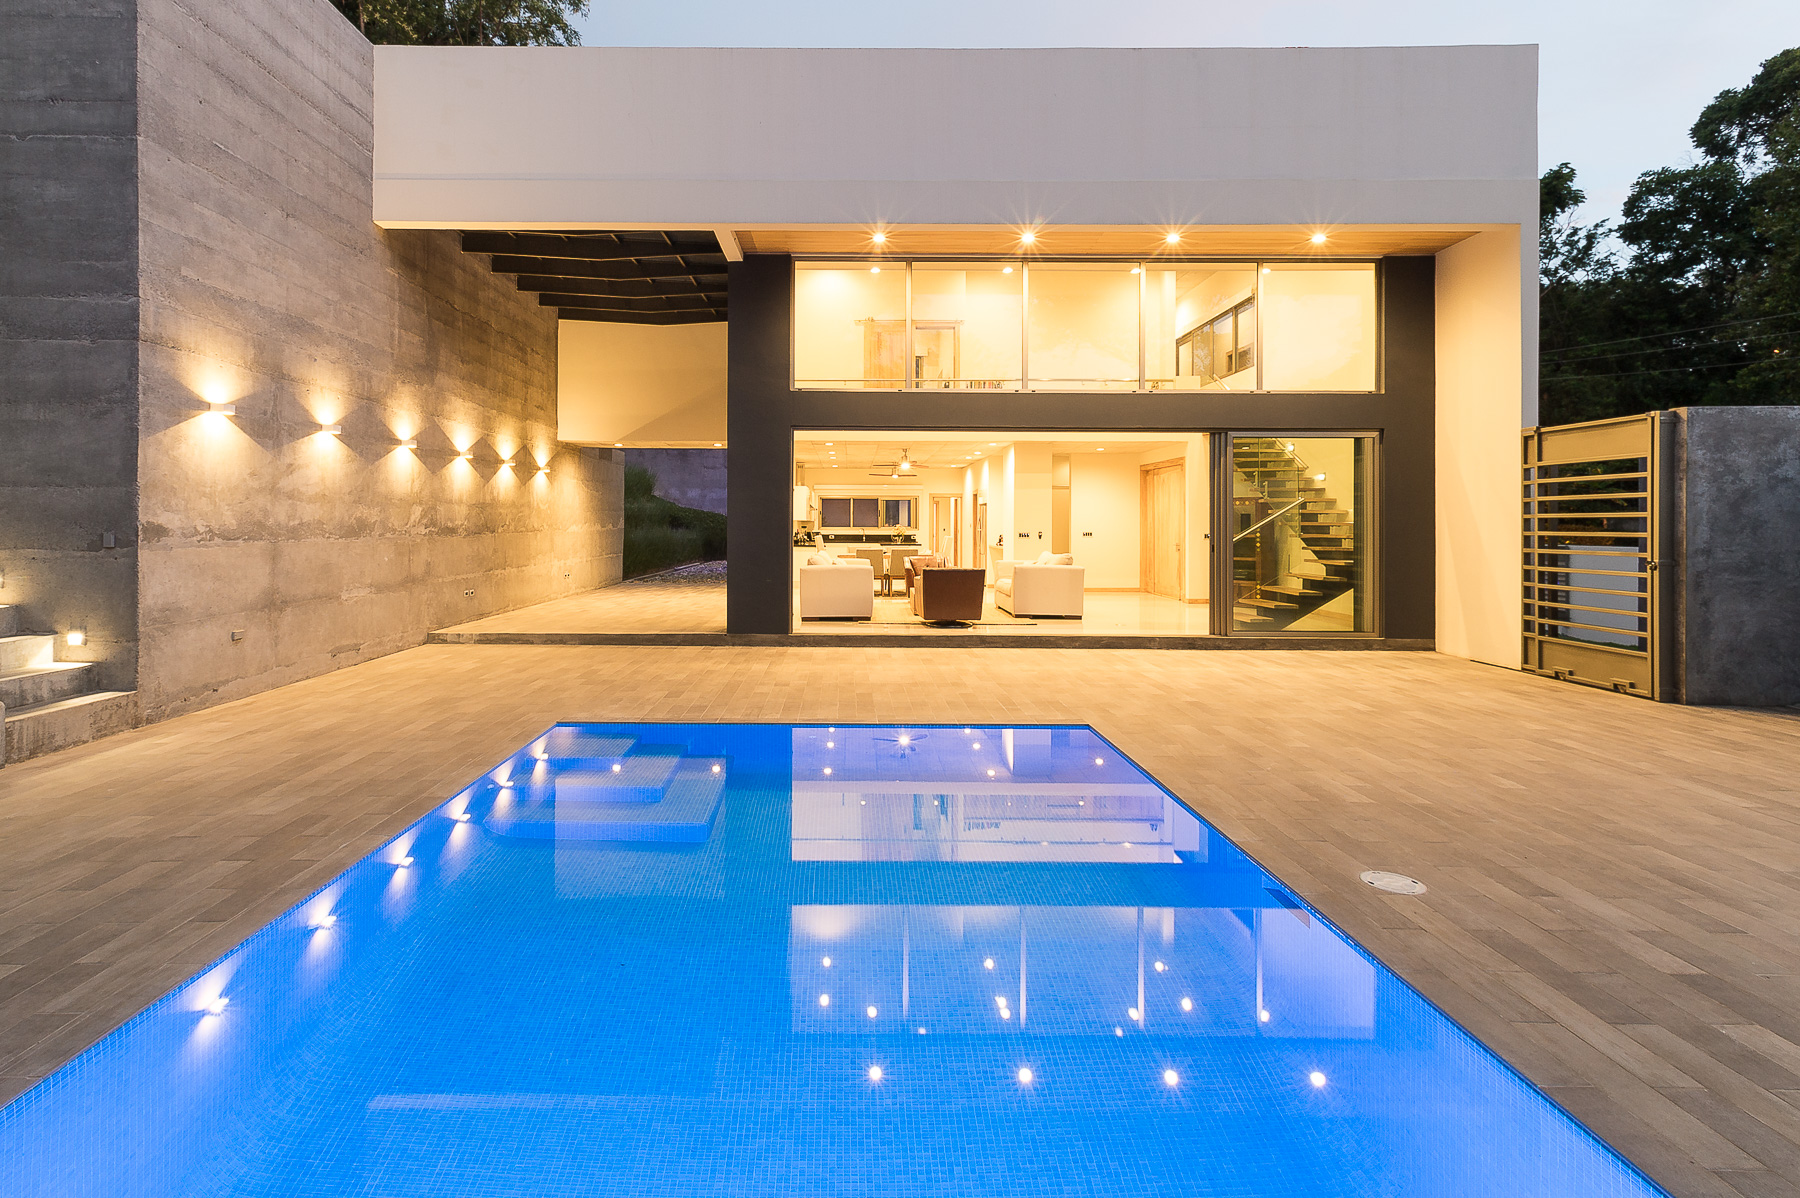 Single Family Home for Sale at Managua's Modern Masterpiece Other Managua, Managua Nicaragua